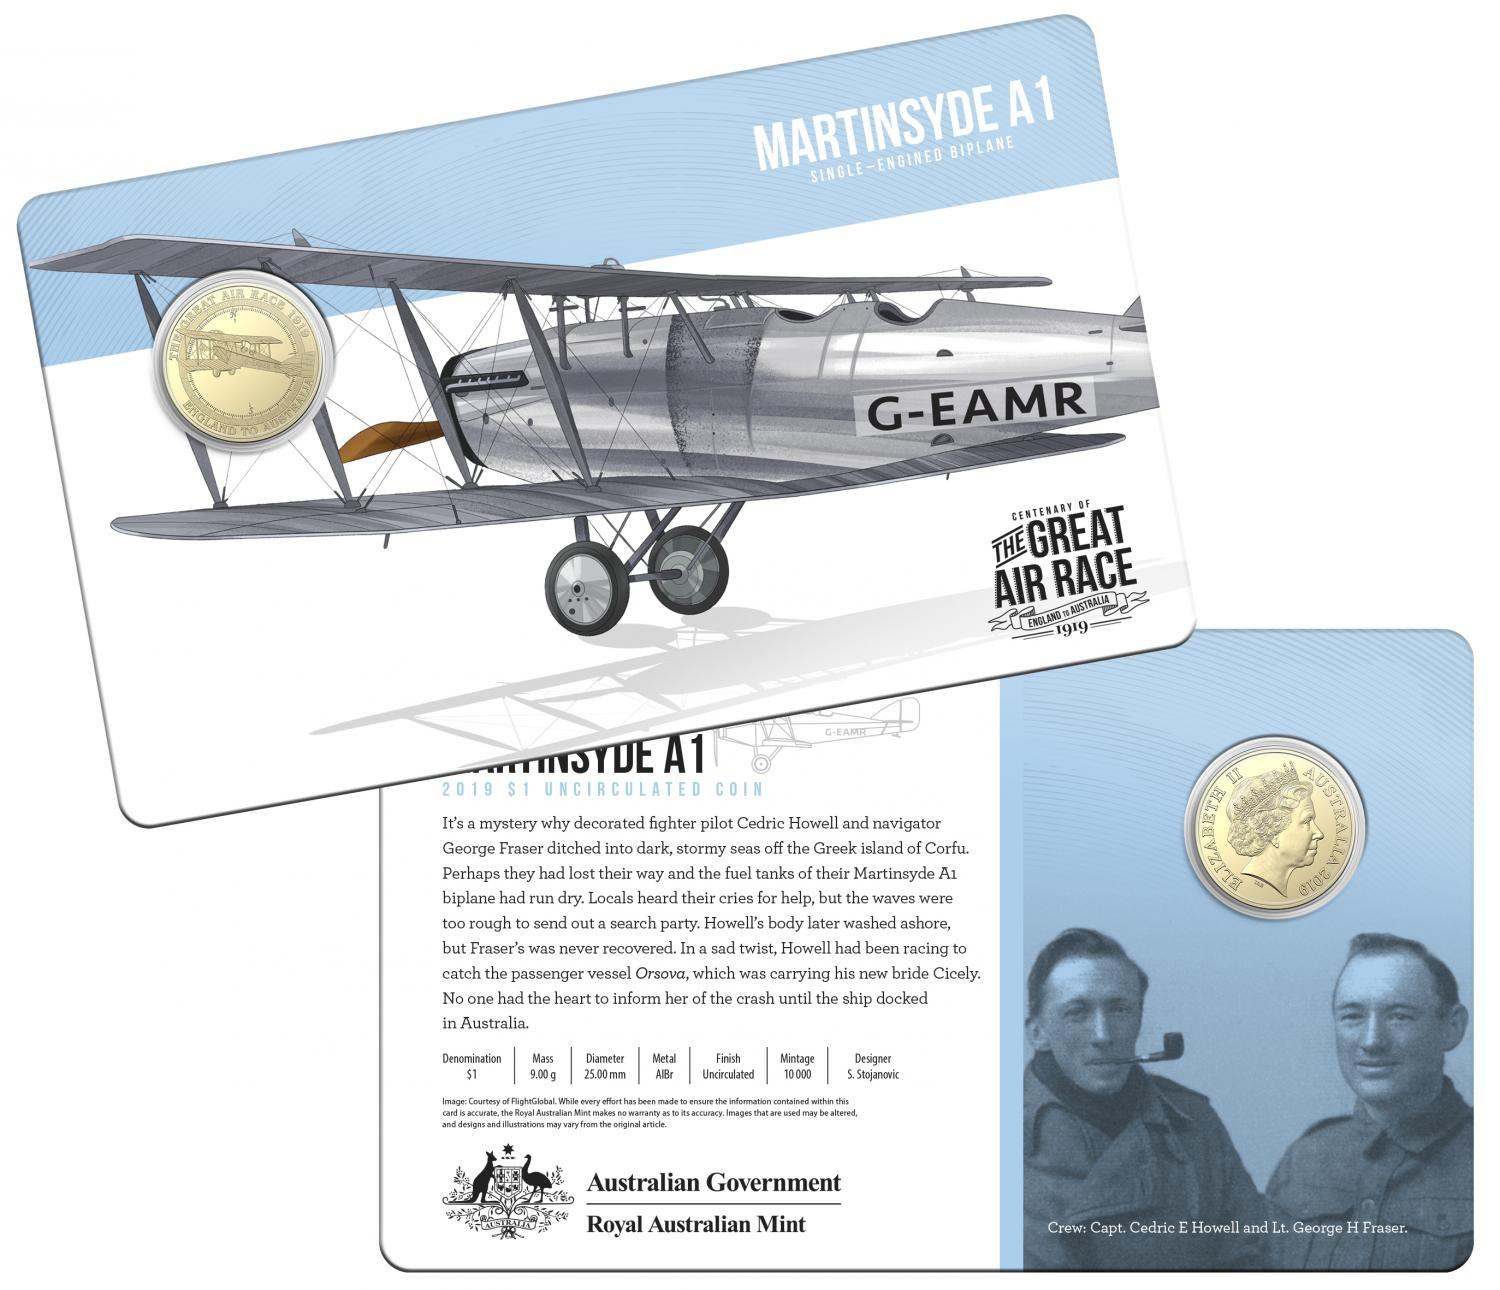 Thumbnail for 2019 Centenary off the Great Air Race Uncirculated $1.00 - Martinsyde A1